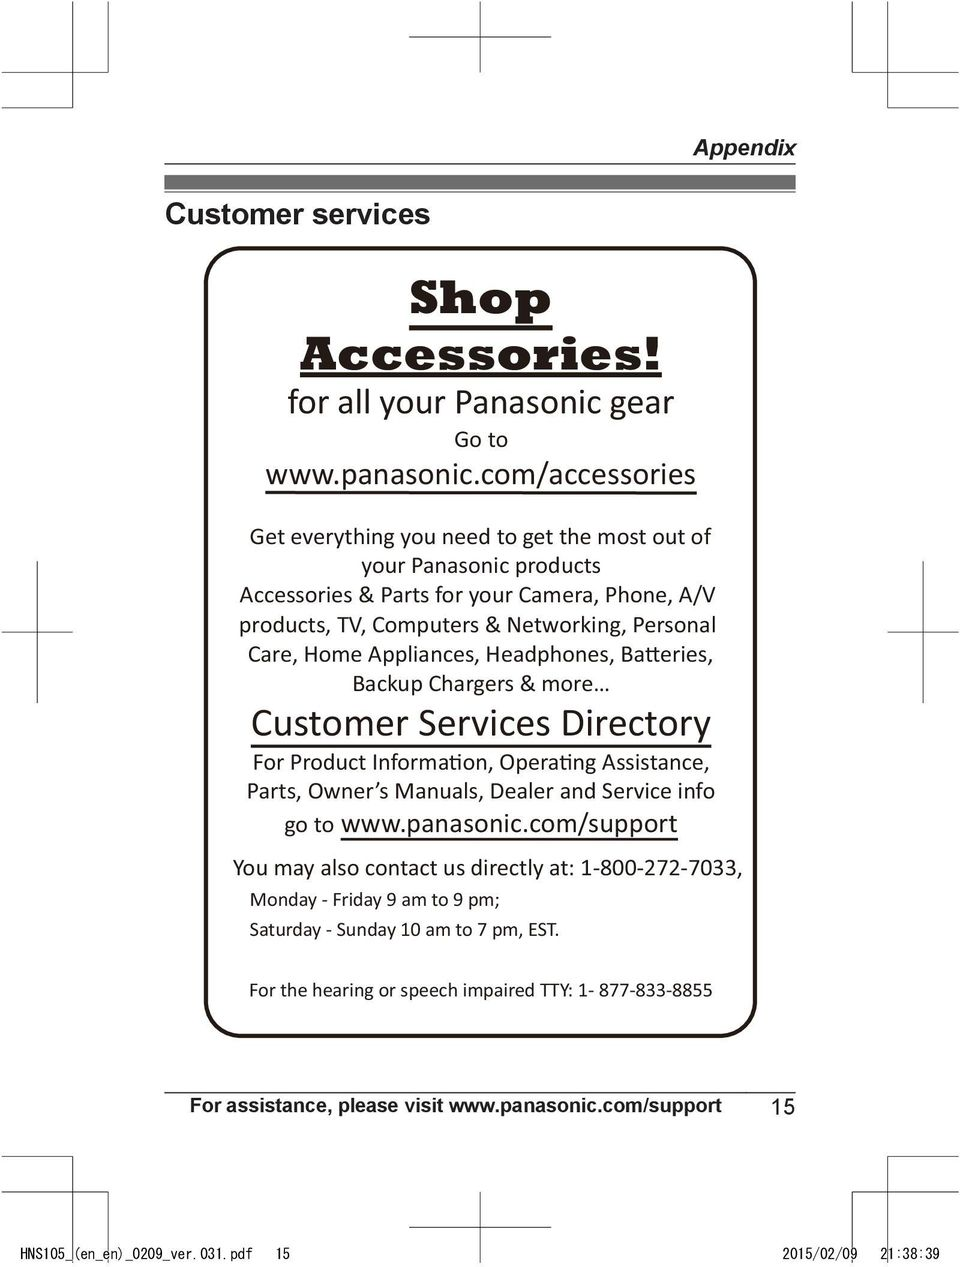 Appliances, Headphones, Ba eries, Backup Chargers & more Customer Services Directory For Product Informa on, Opera ng Assistance, Parts, Owner s Manuals, Dealer and Service info go to www.